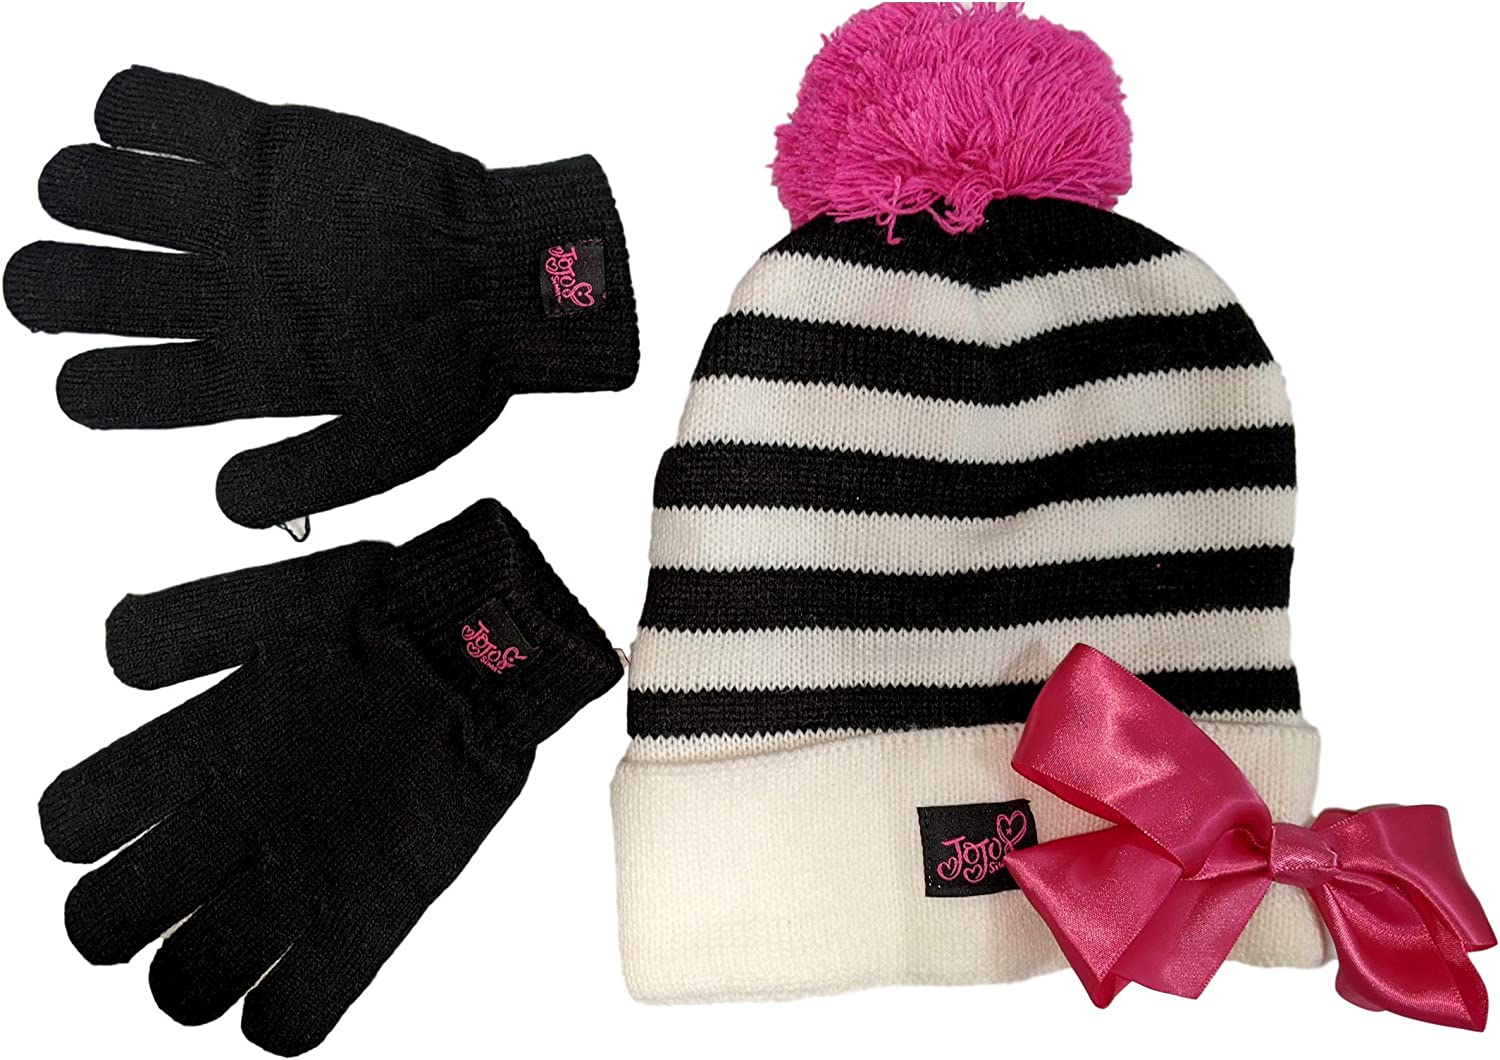 Nickelodeon JoJo Siwa Girls Winter Hat and Gloves Cold Weather Set, Age 4-7